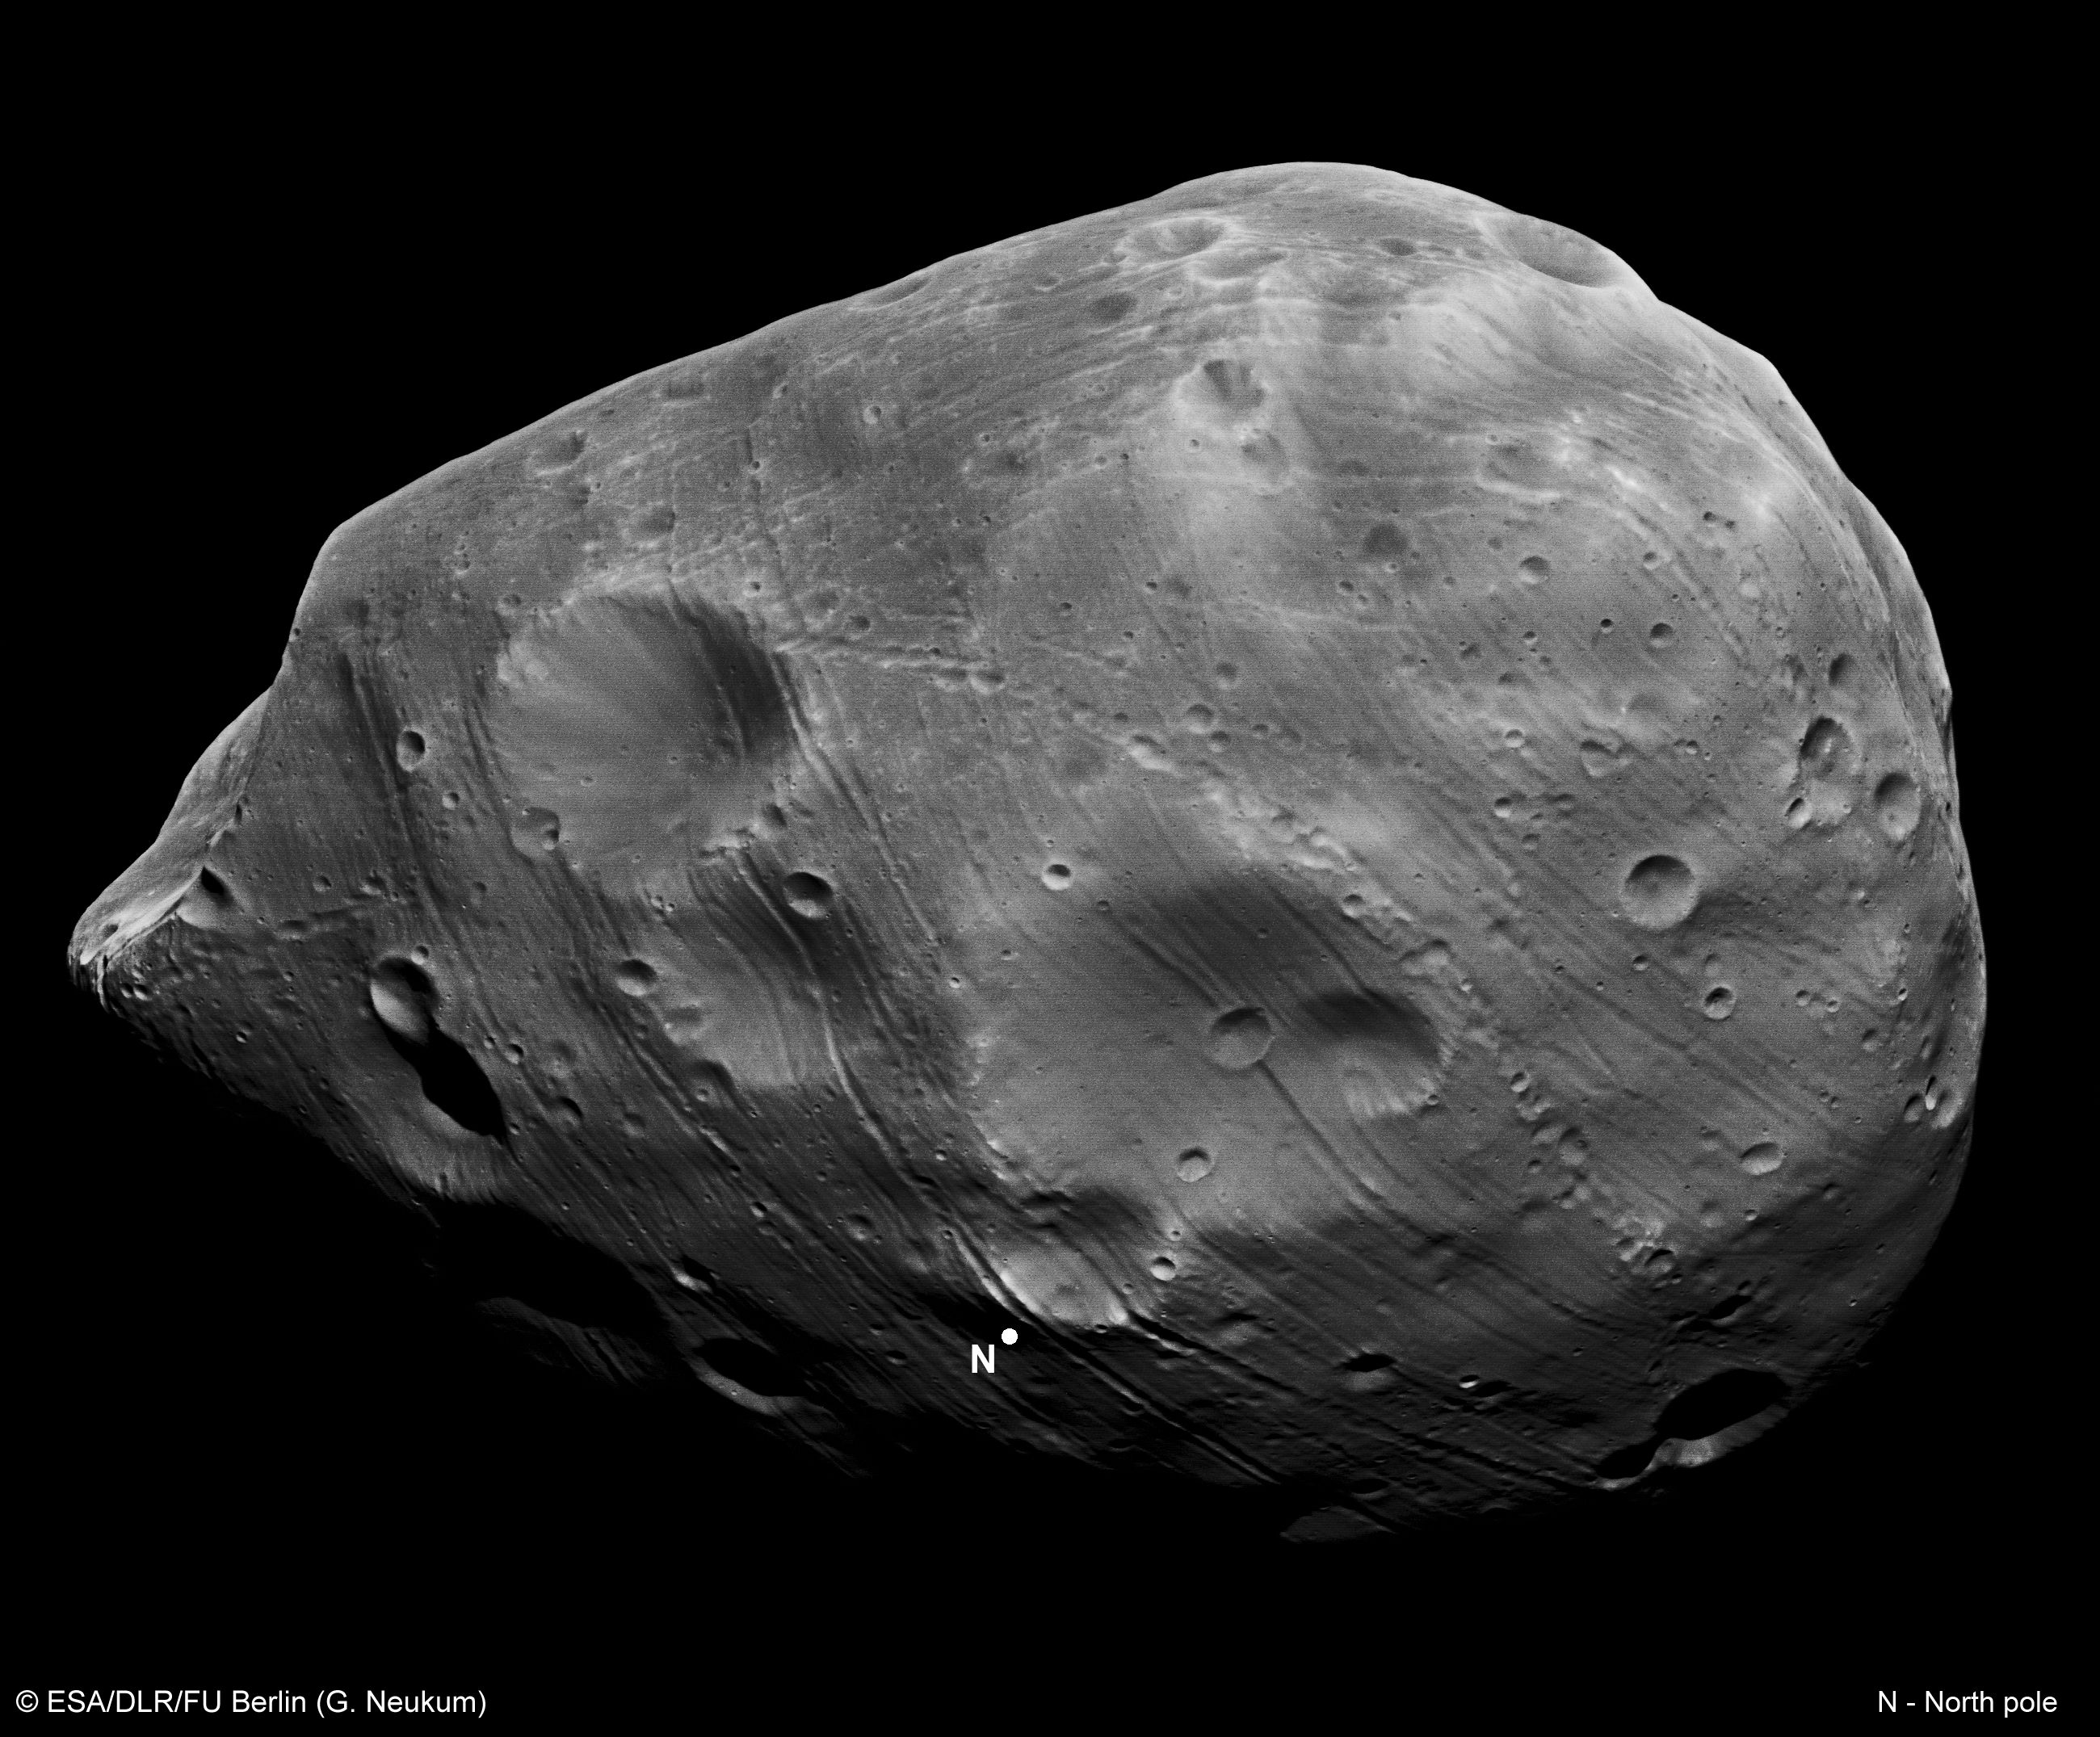 APOD: 2010 March 17 - Phobos from Mars Express